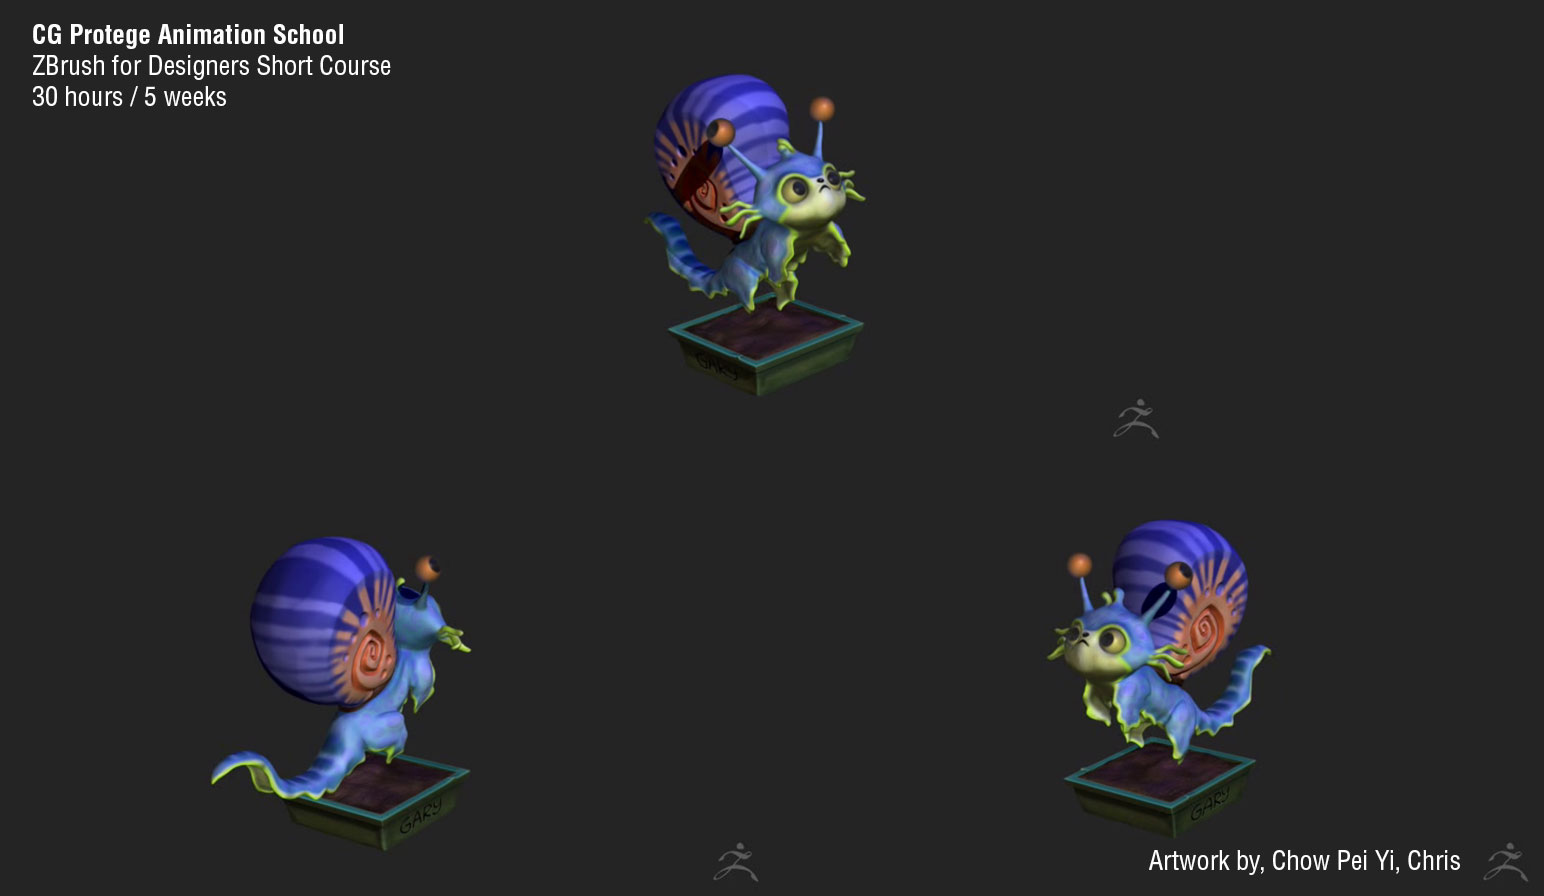 CG Protege Animation School: ZBrush for Designers Class 4